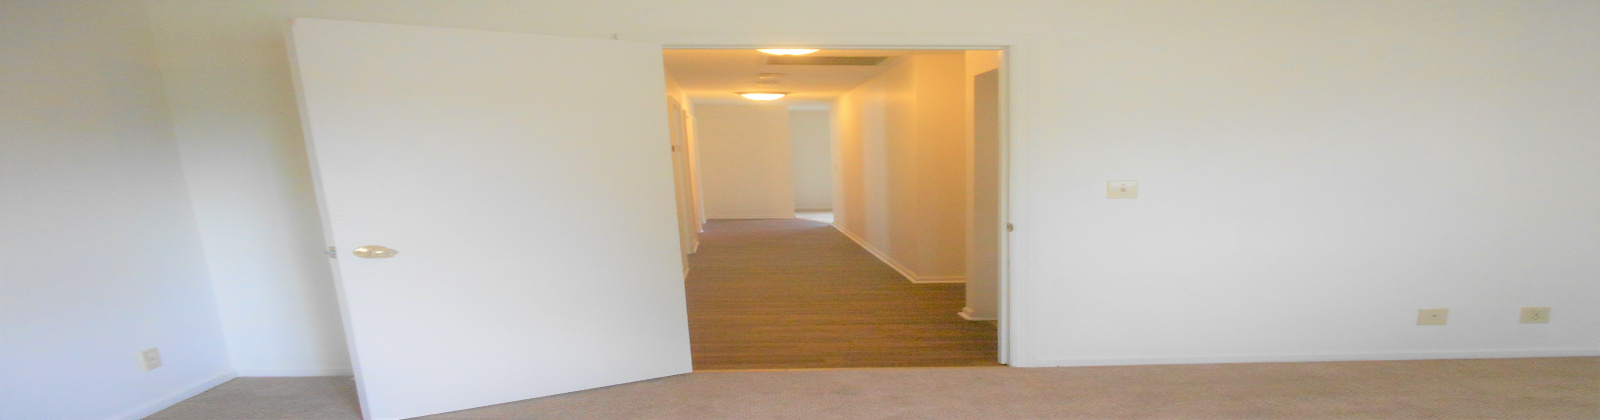 118 E State Street Athens, Ohio, 3 Bedrooms Bedrooms, ,1 BathroomBathrooms,Apartment,For Rent,E State,1011